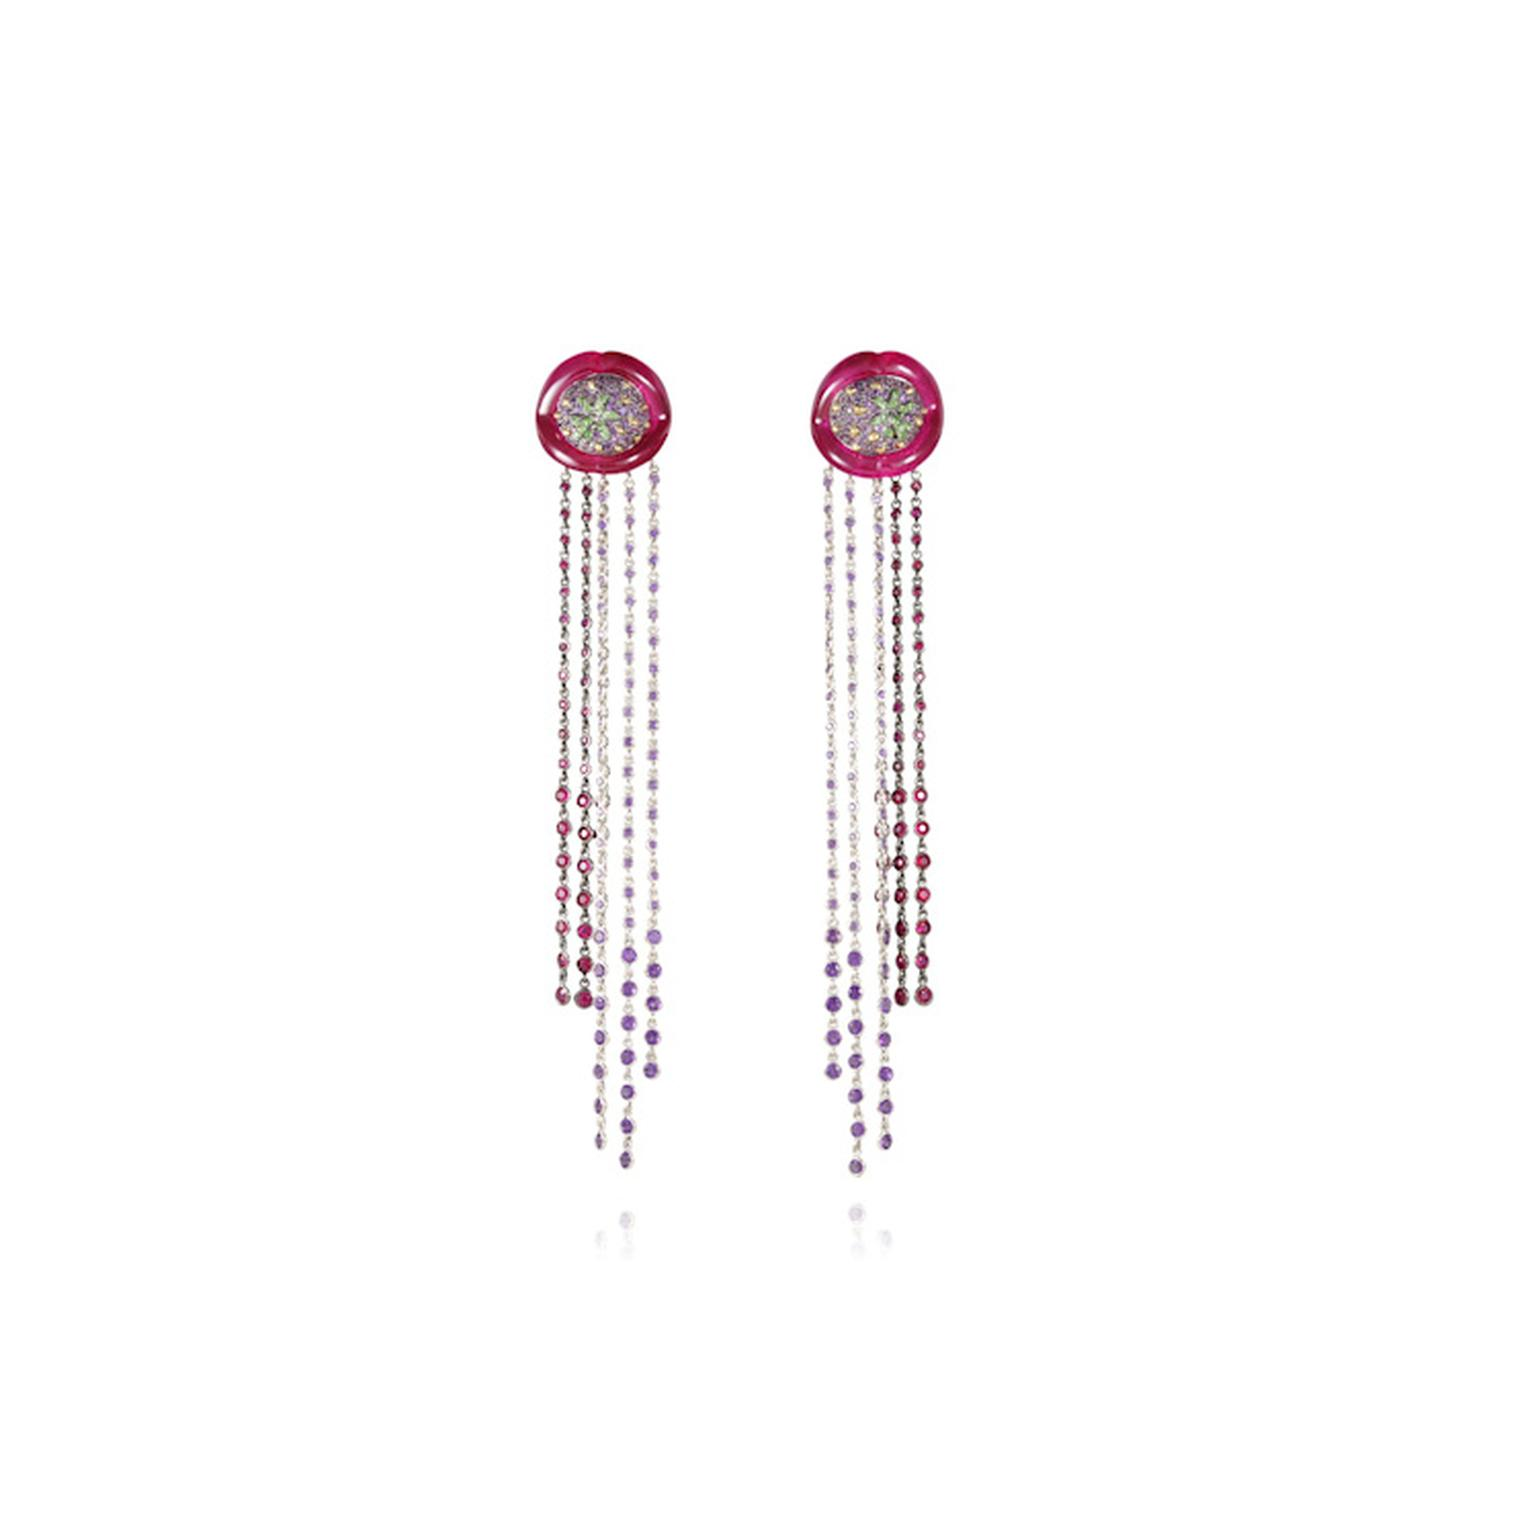 Lydia Courteille fringe earrings